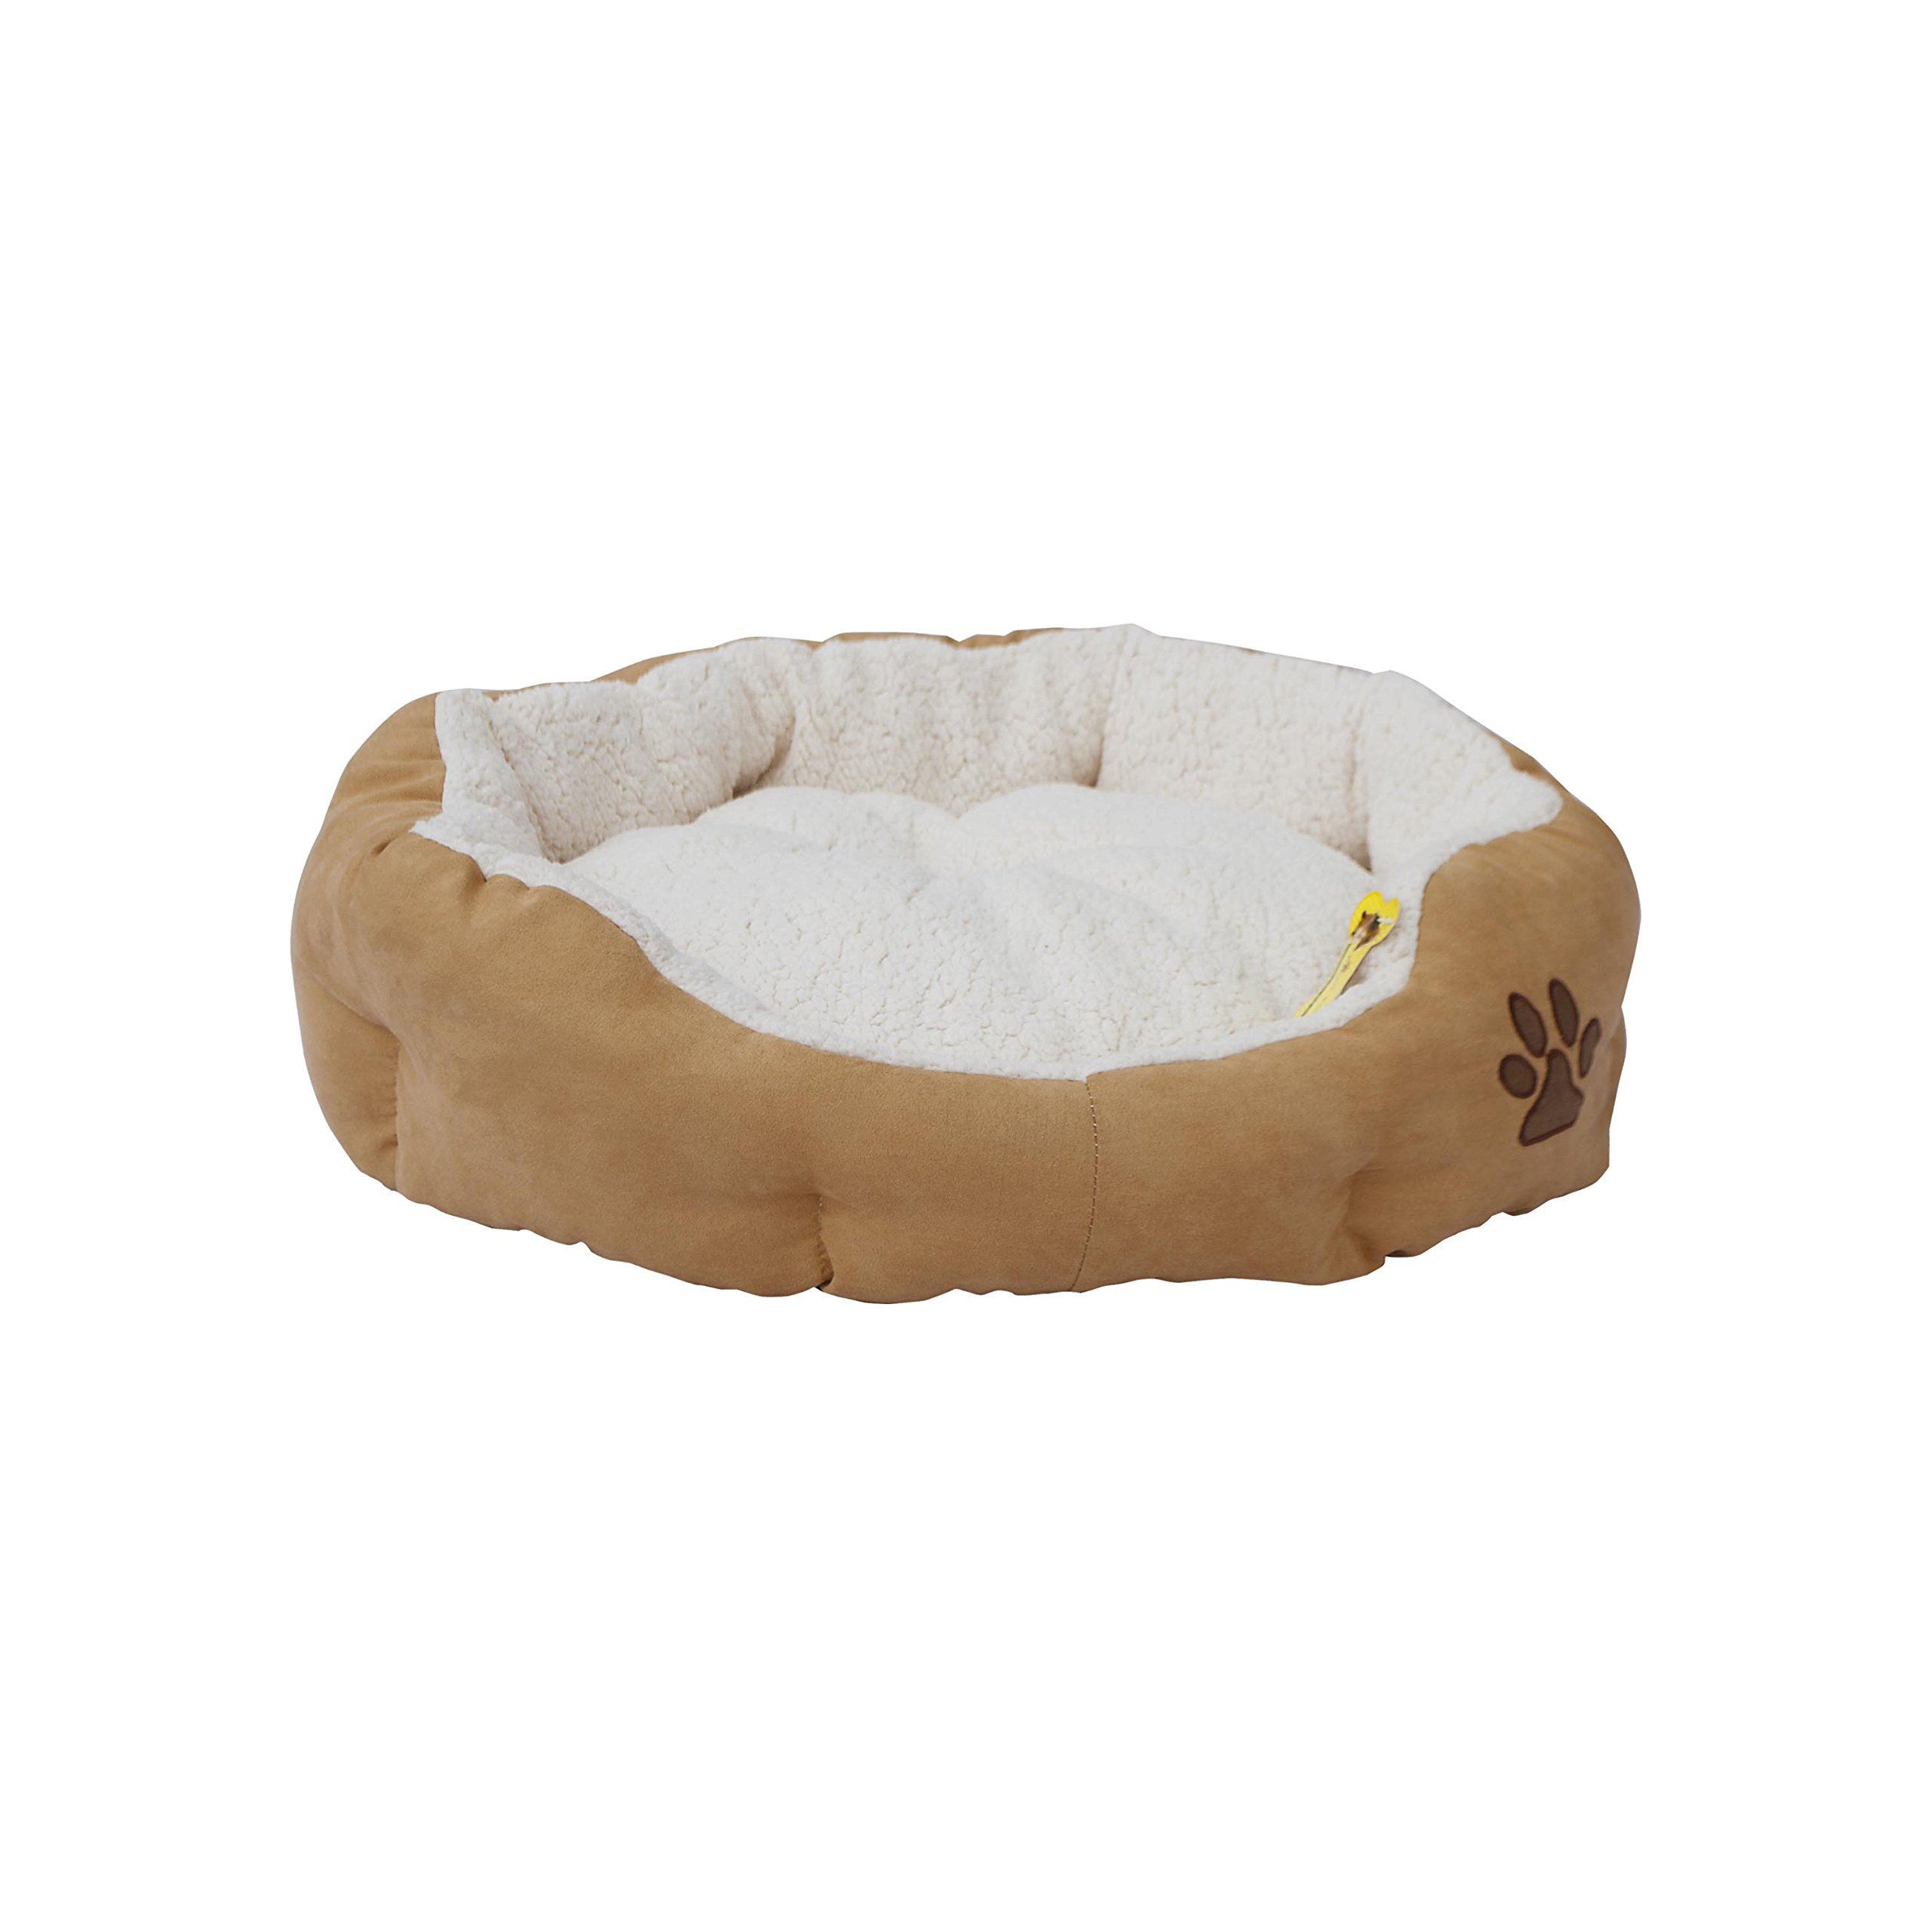 ALEKO PB02M Medium Plush Pet Cushion Crate Bed for Dogs Cats Machine Washable Indoor Outdoor with Removable Insert Pillow 23 x 22 x 6 Inches Beige and White